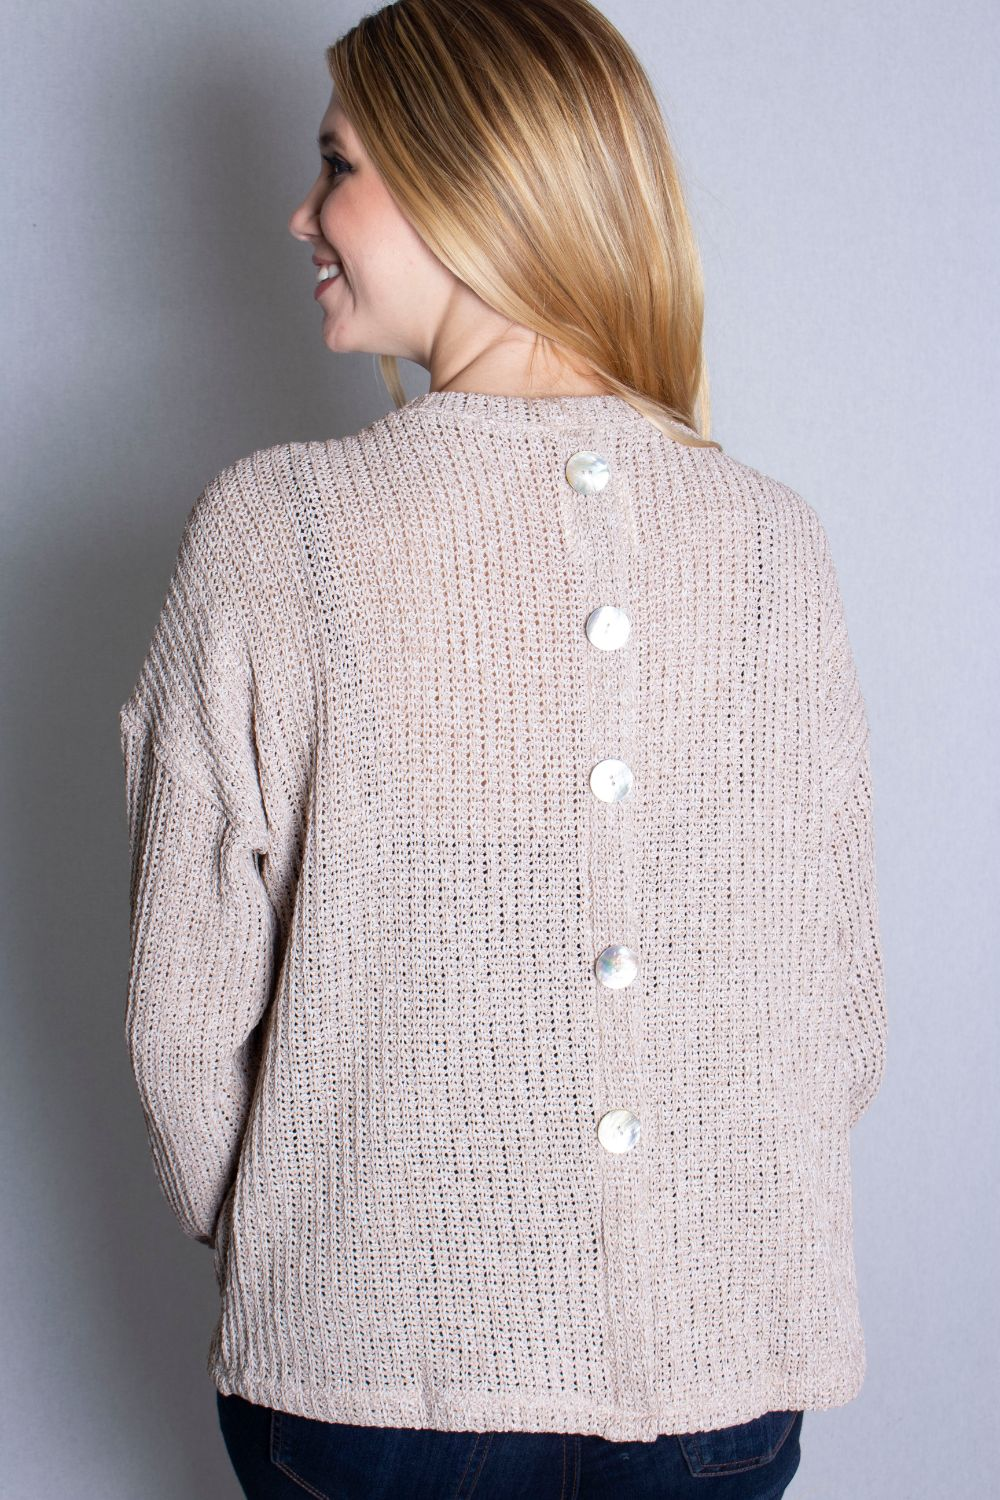 Women's Long Sleeve Sweater with Back Button Detail